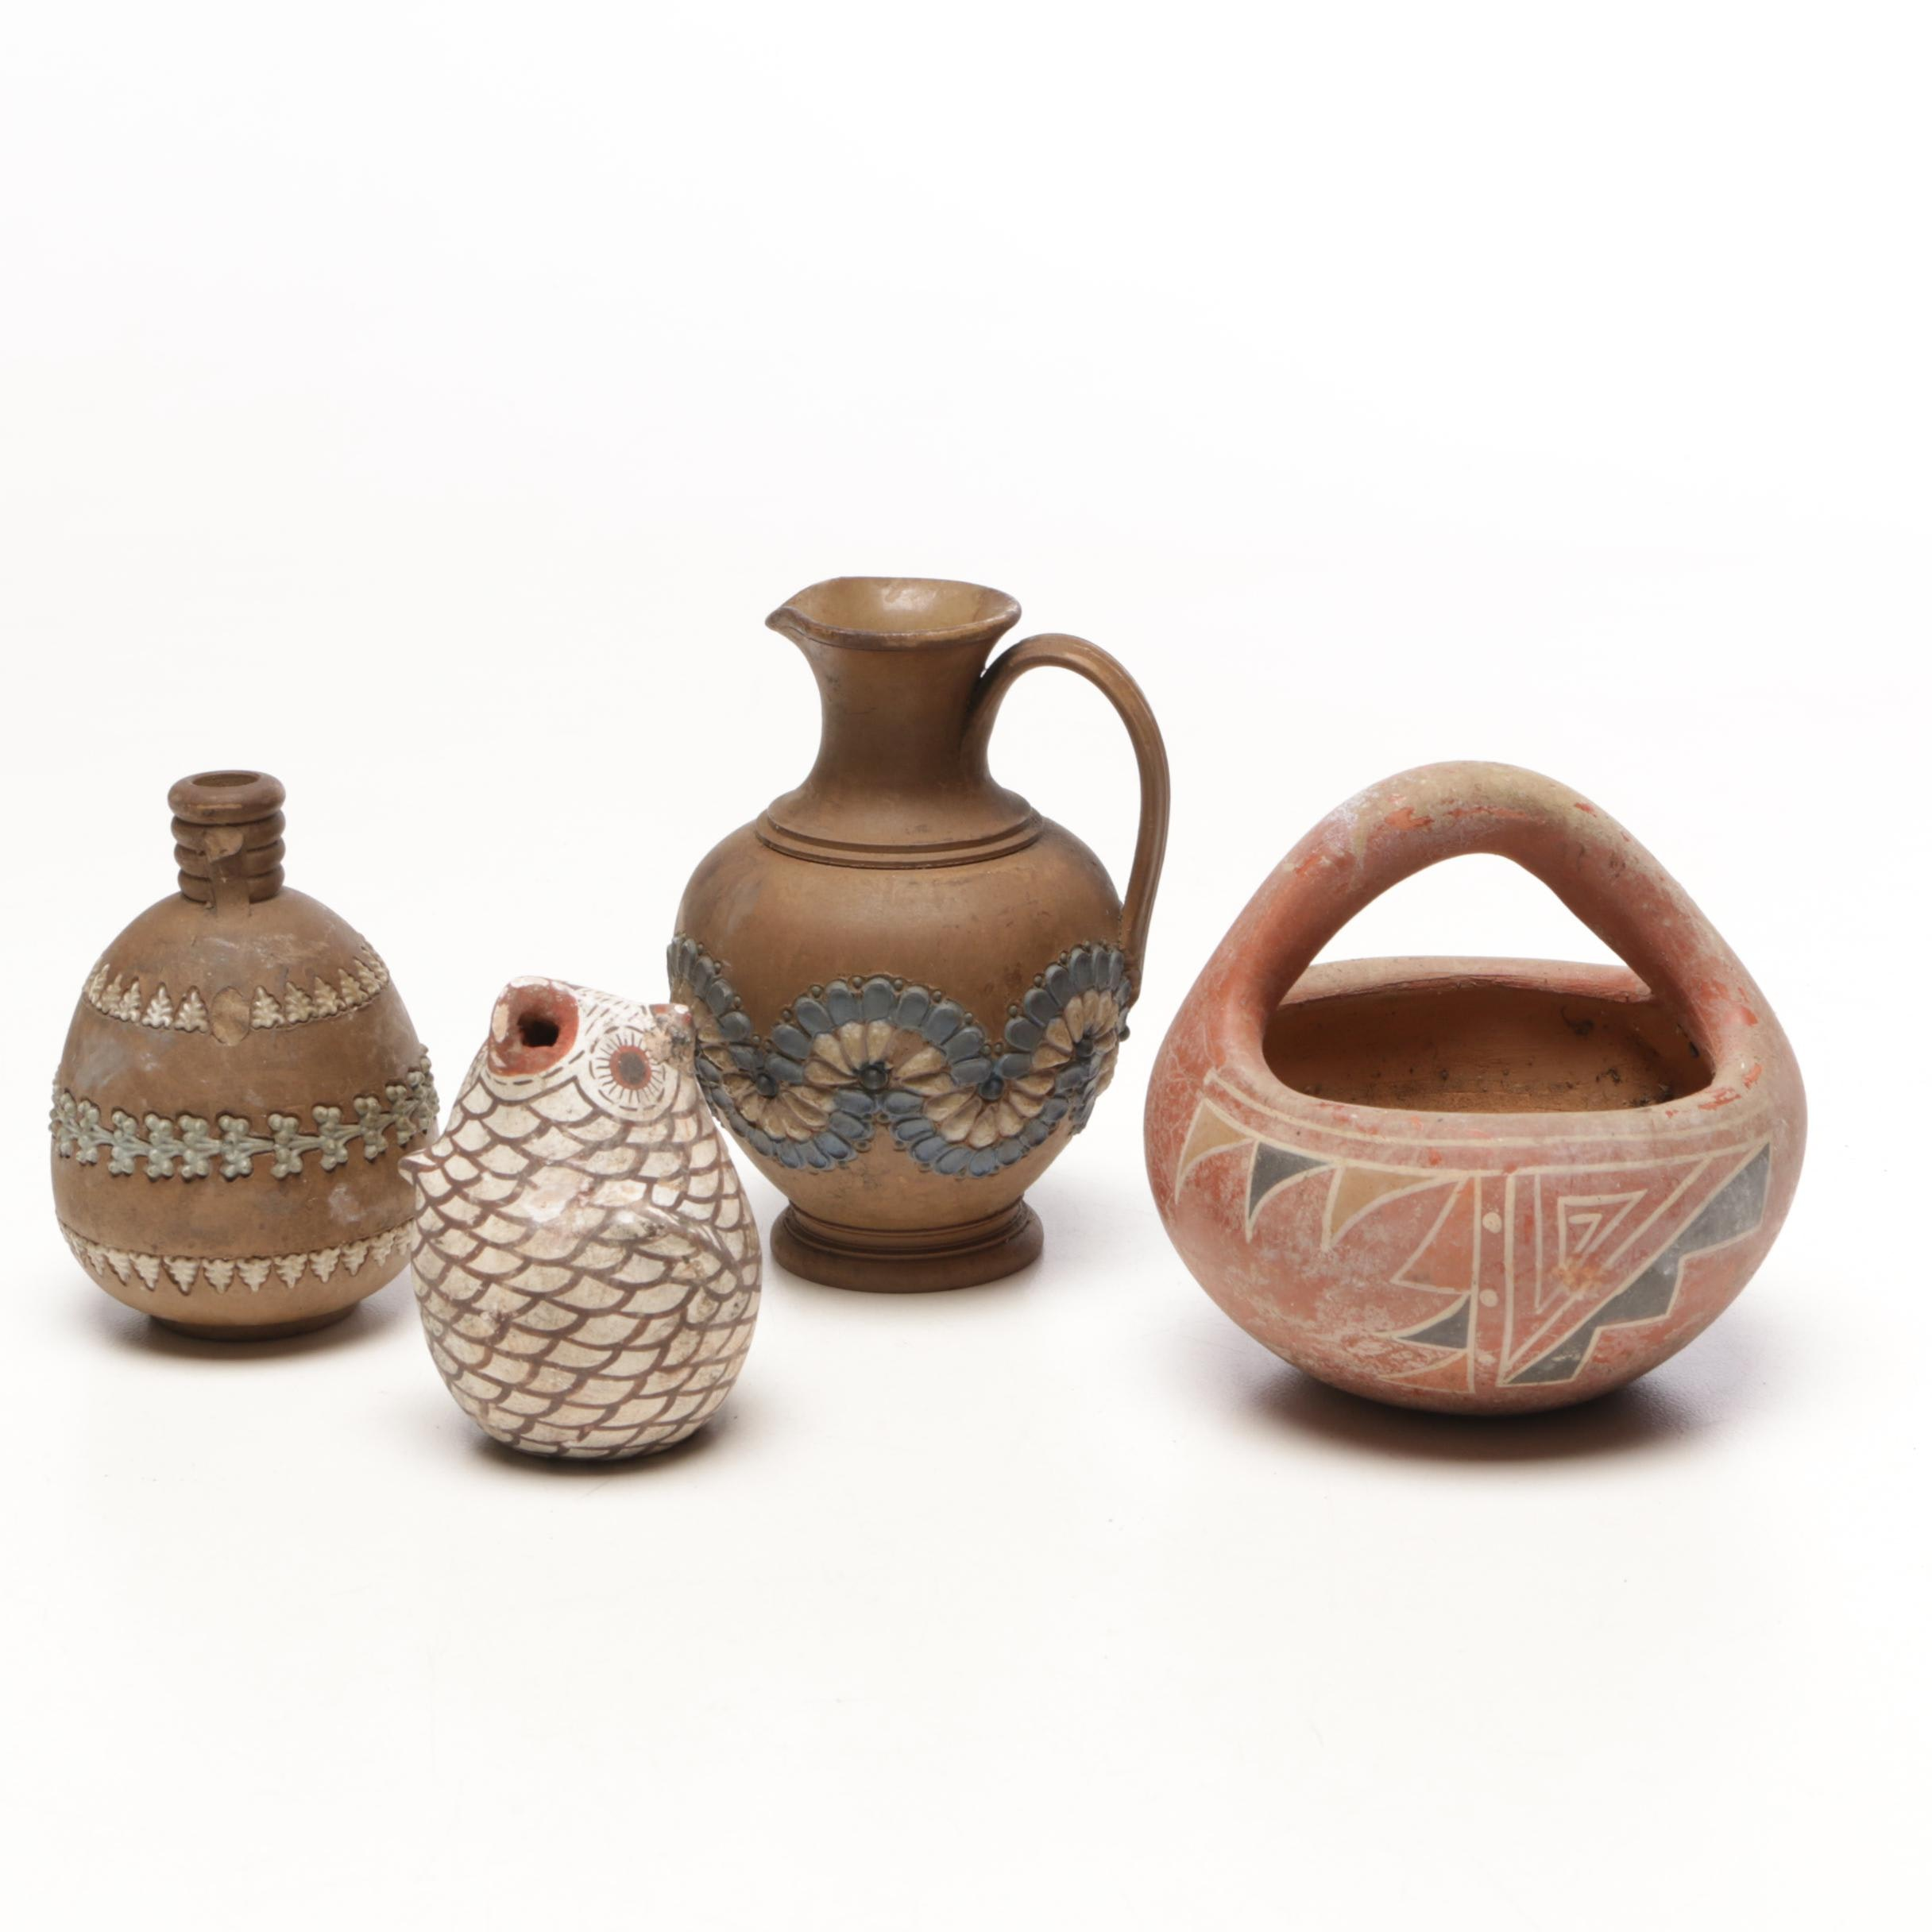 Doulton Lambeth with Zuni Style Earthenware Vases and Decor